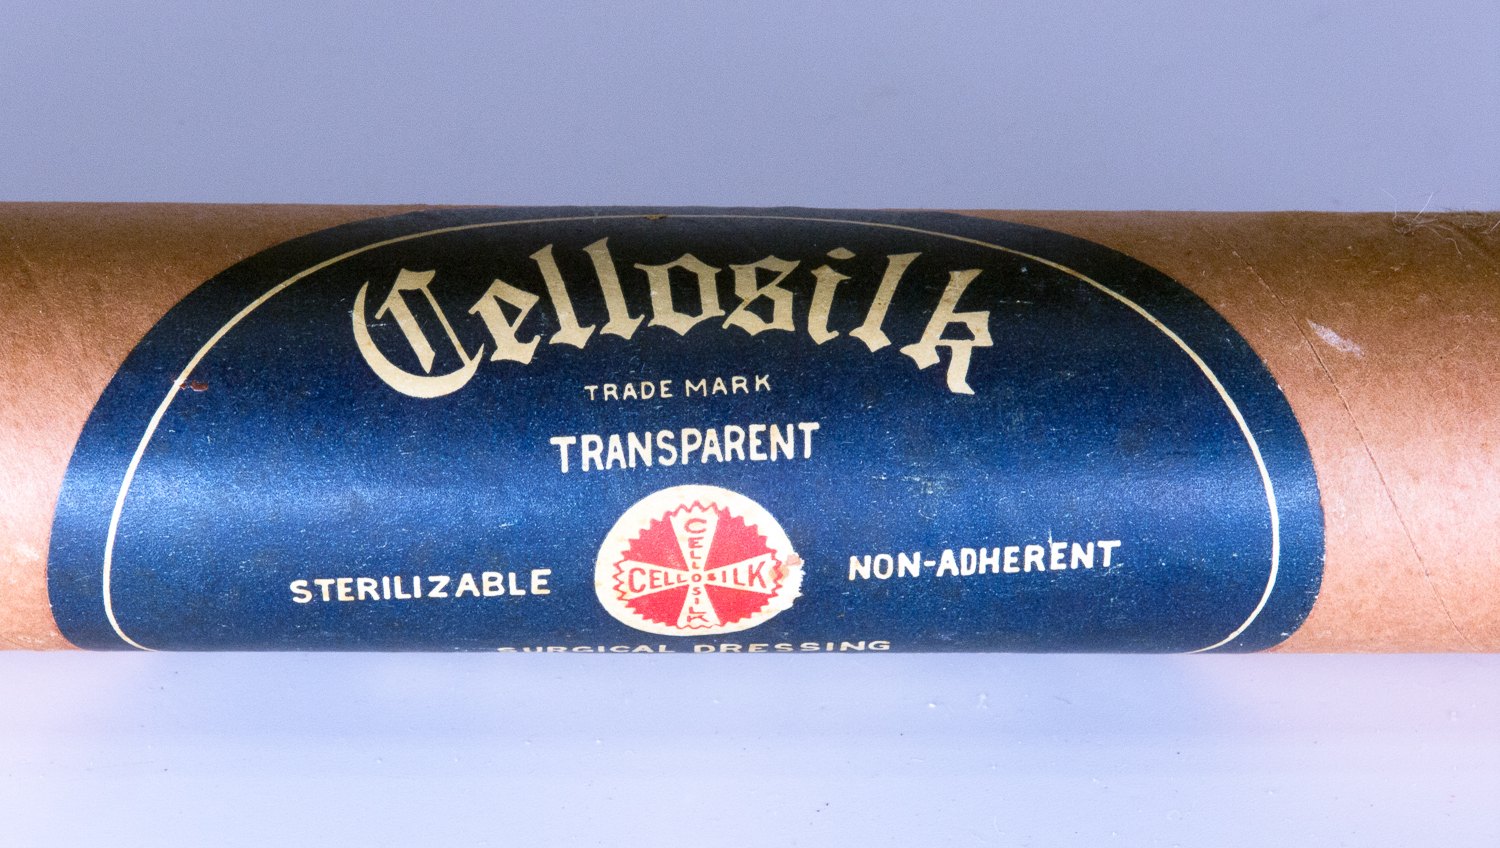 Cellosilk Surgical Dressing